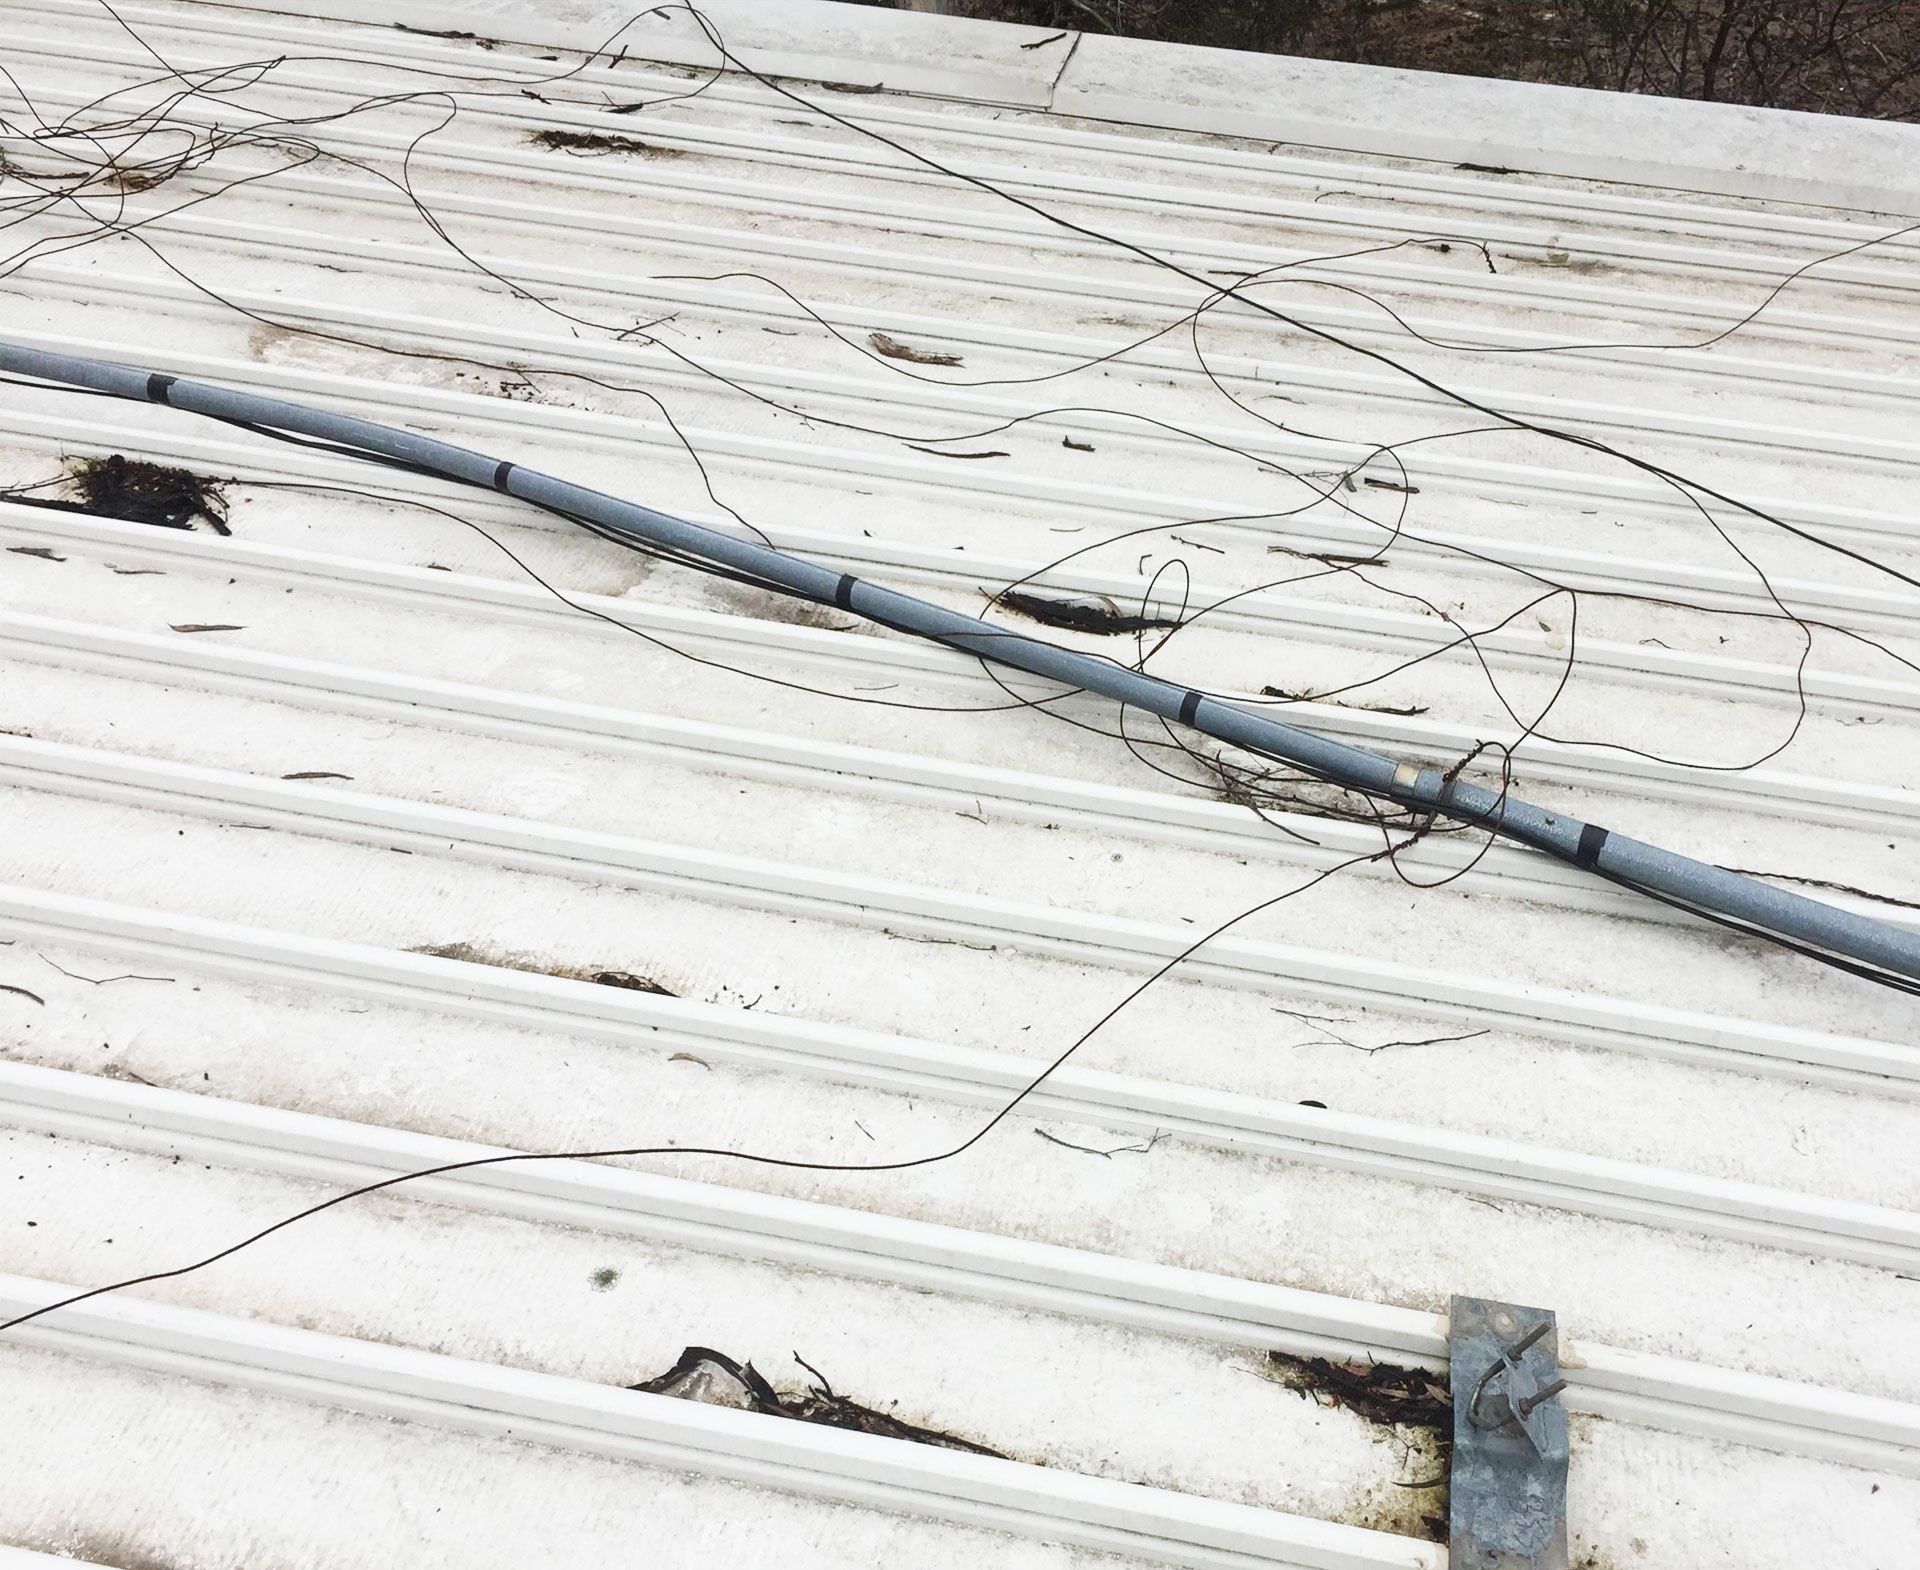 Repairing Guyed Masts Strong Wind And Storm Damage